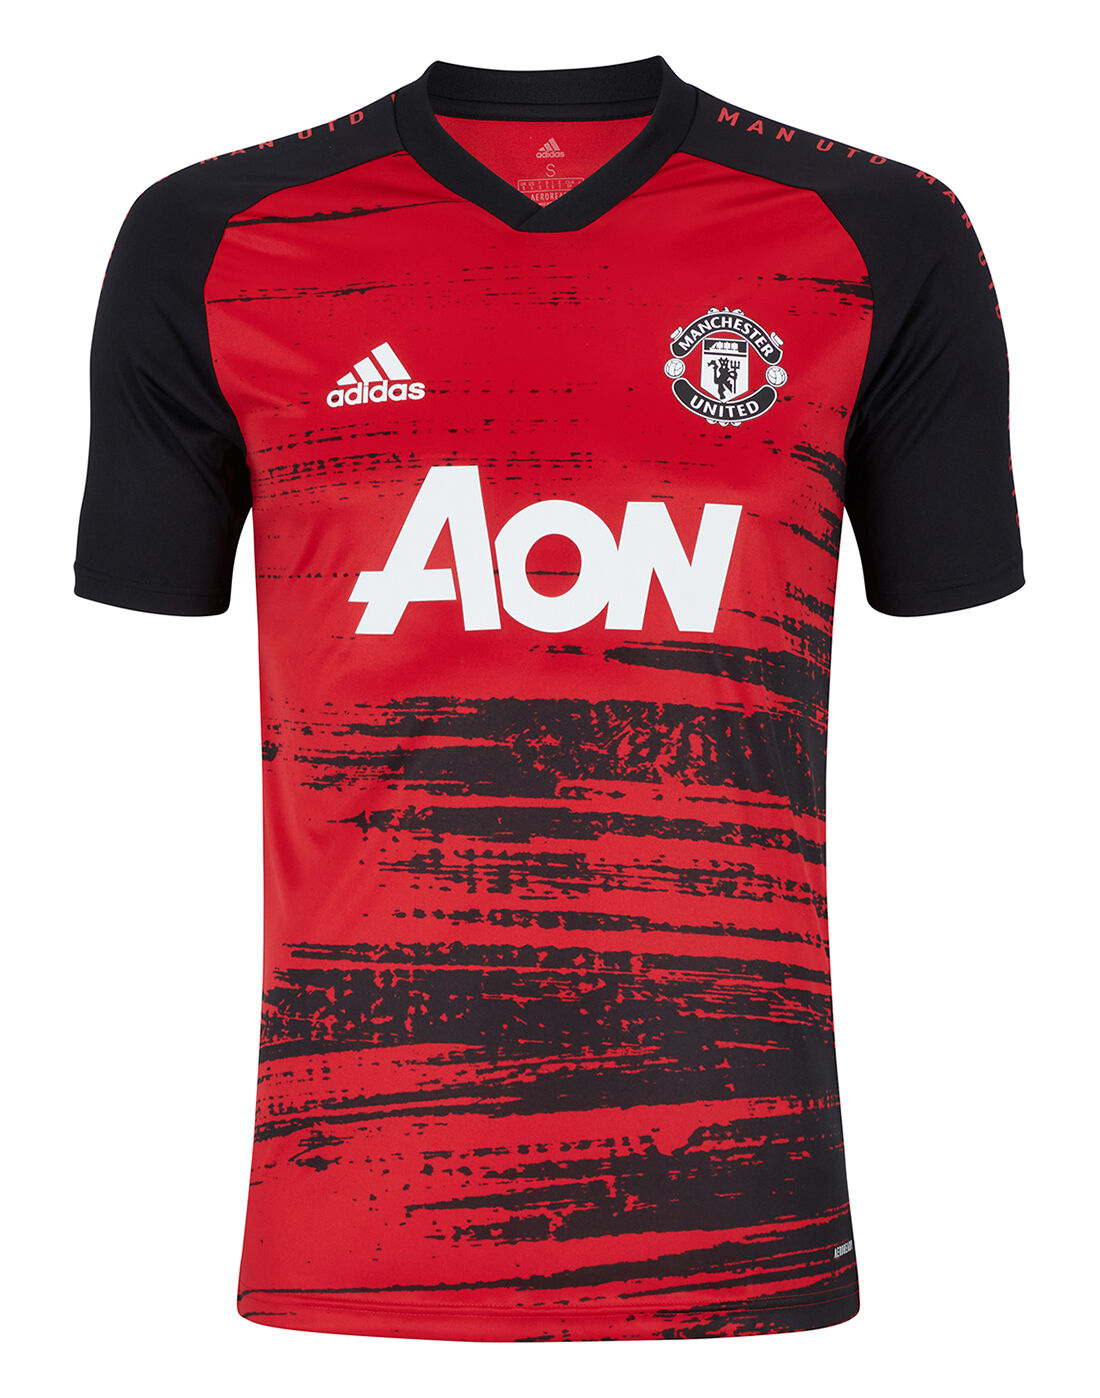 adidas Adult Man Utd 20/21 Pre-Match Jersey - Red | Life Style ...